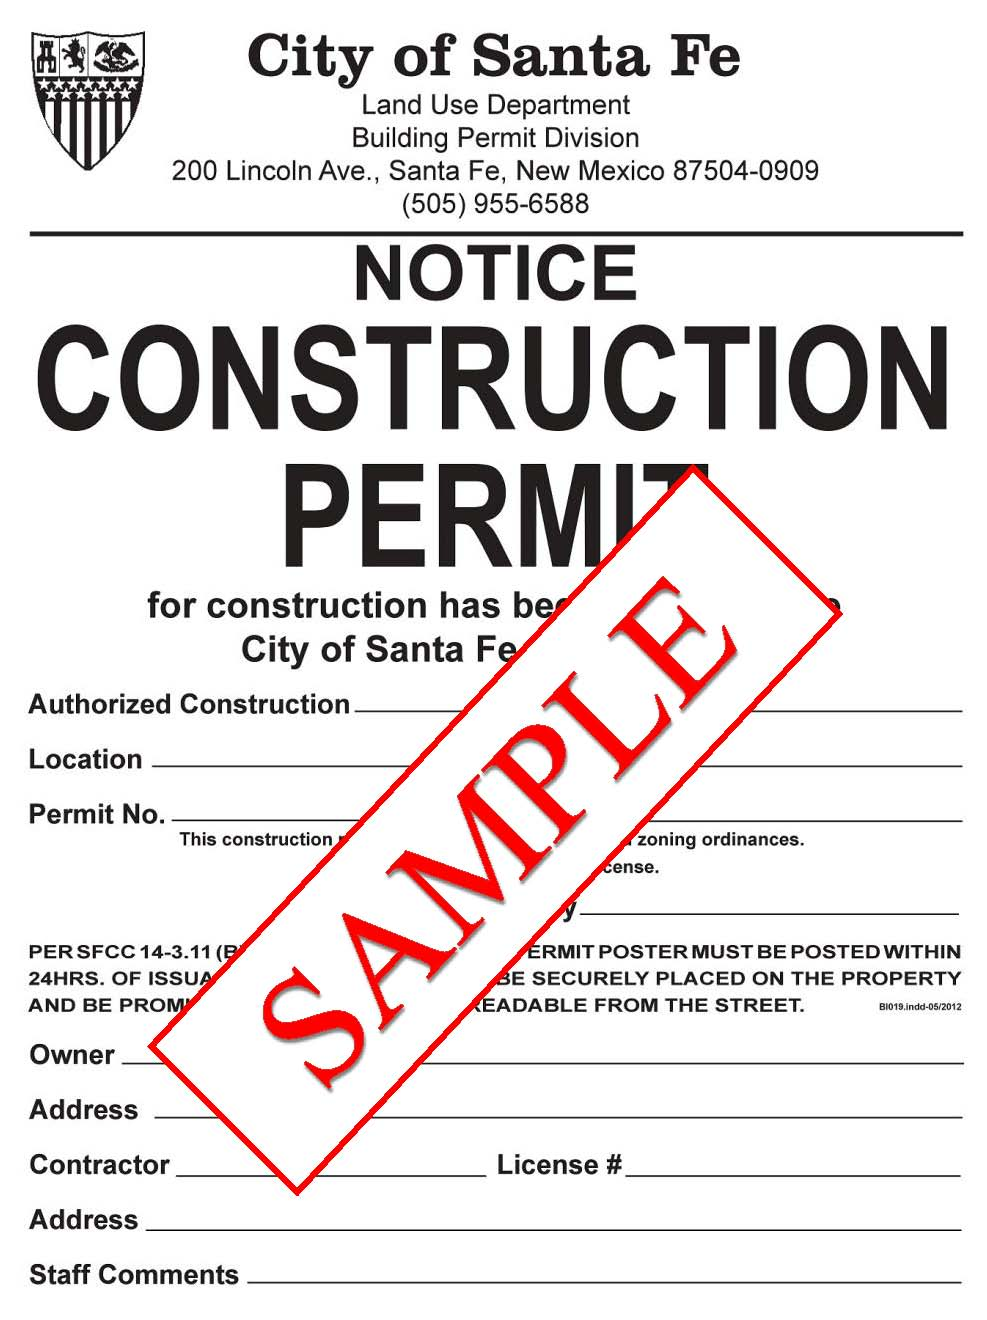 Building Permits City Of Santa Fe New Mexico Electrical House Wiring Symbols Sample Construction Permit Poster